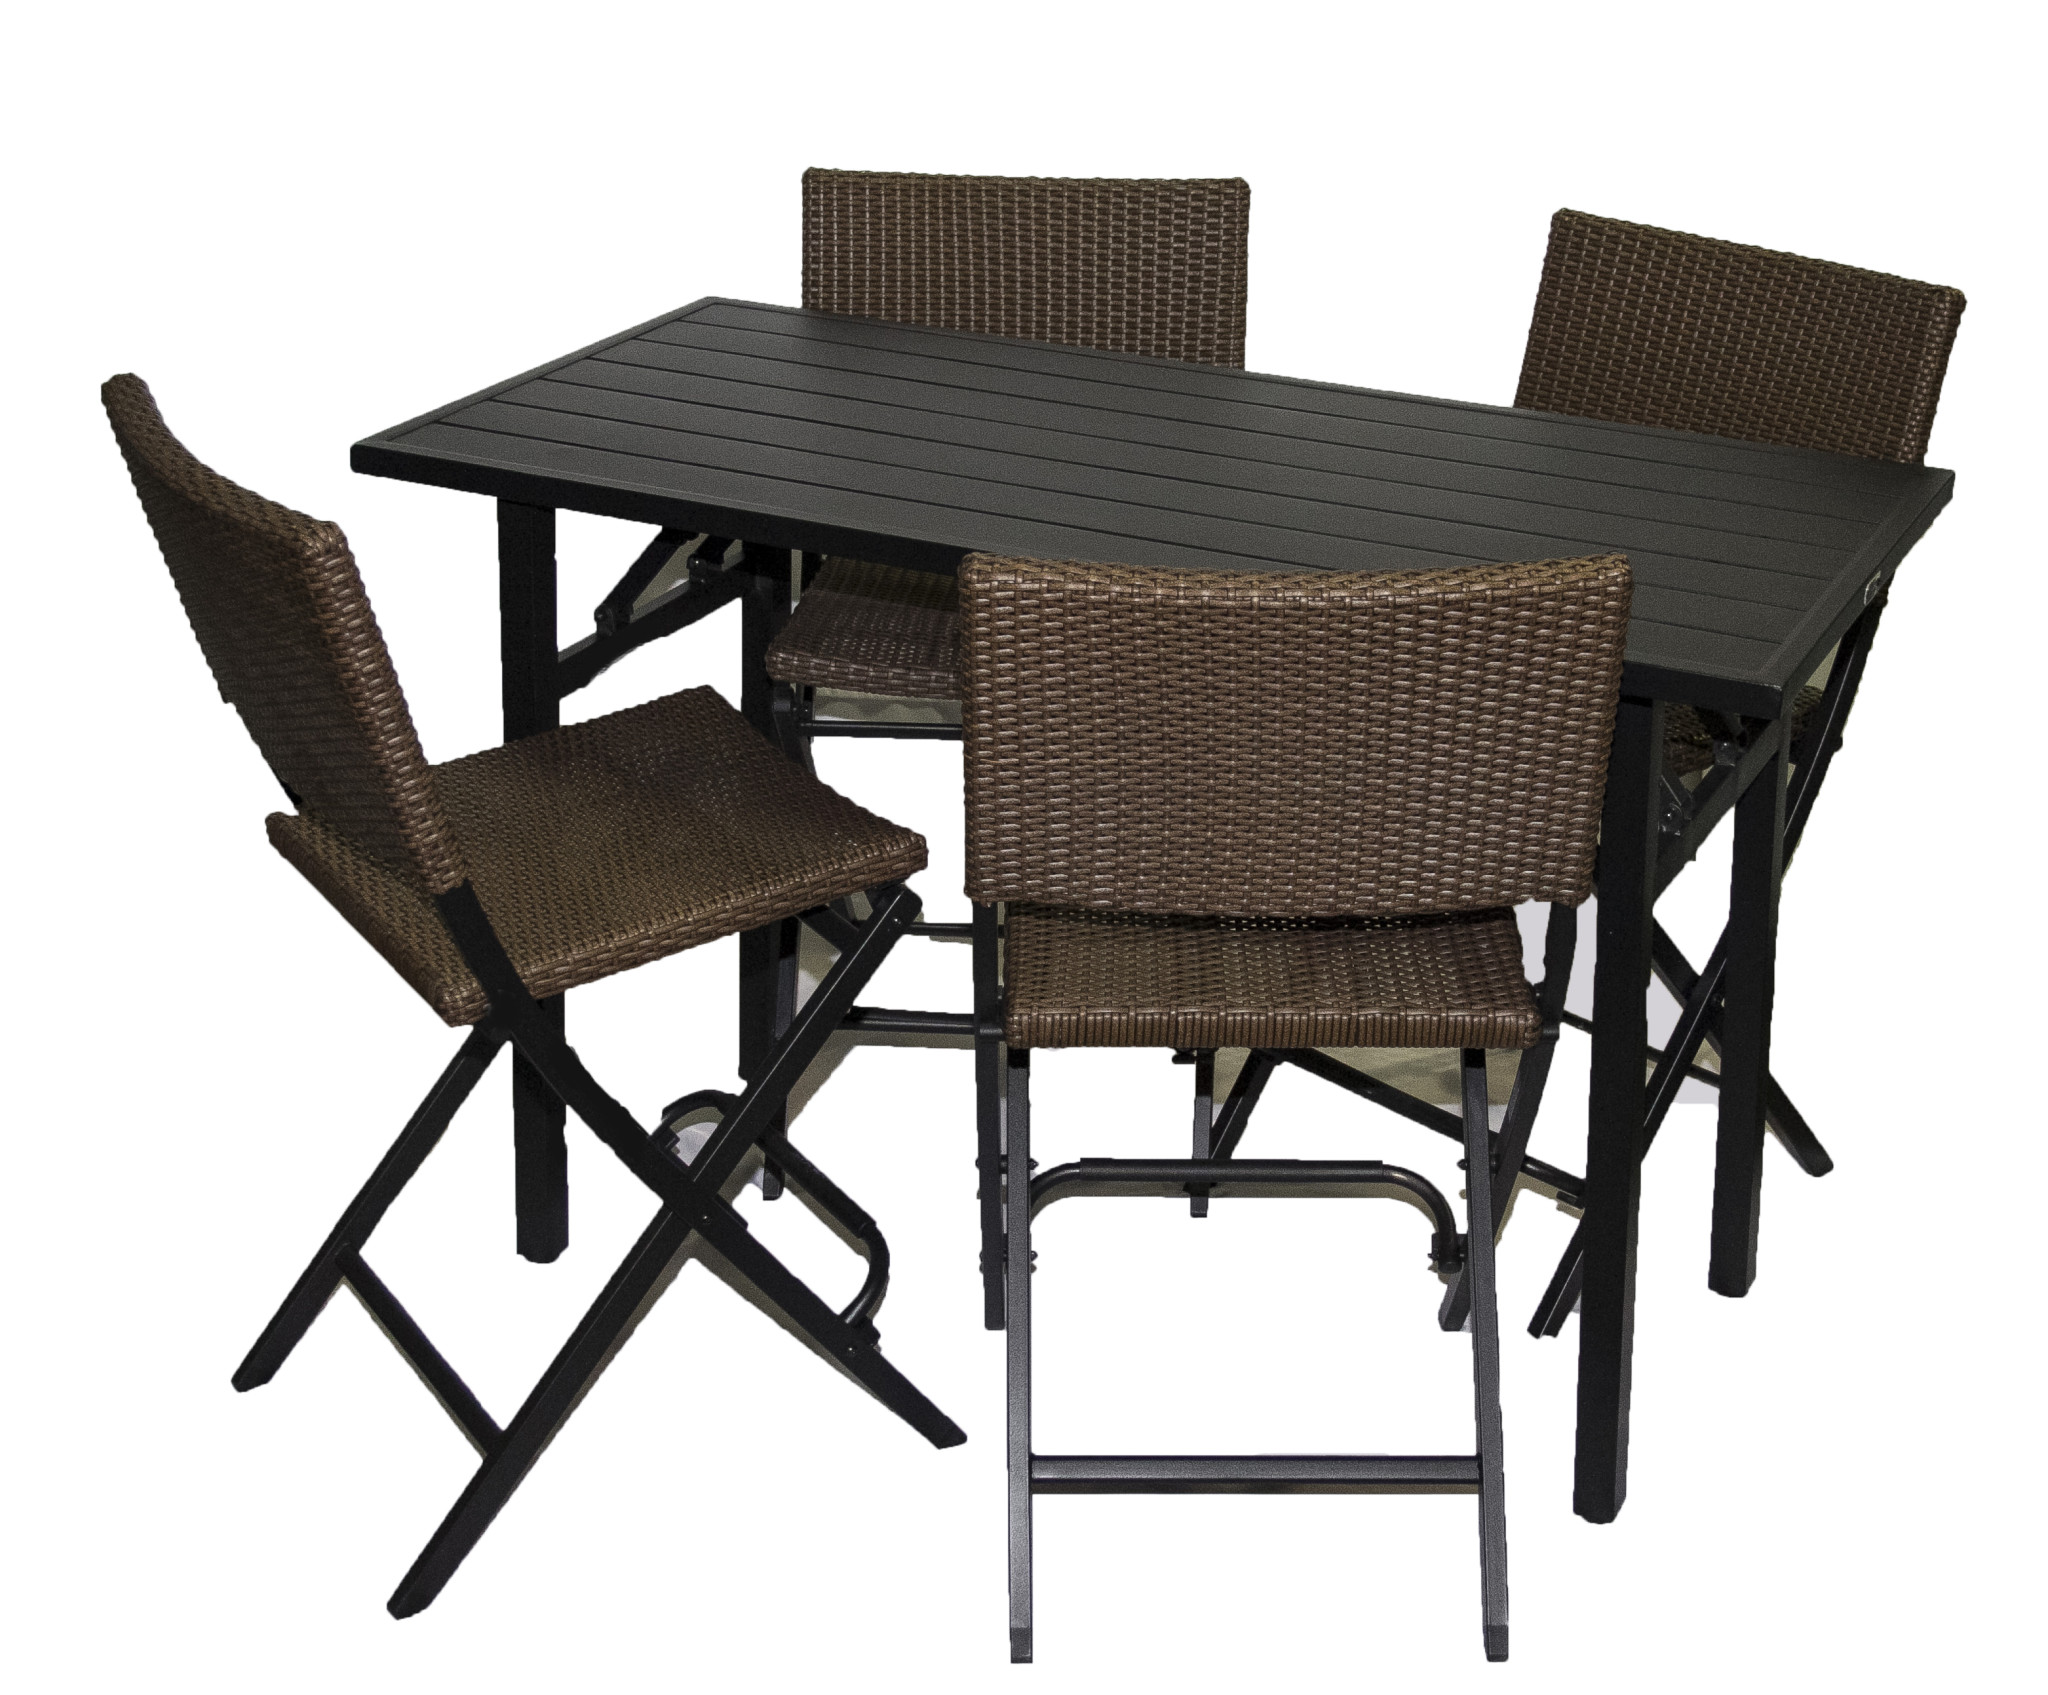 bar height patio chairs tall office for standing desks set trailer events